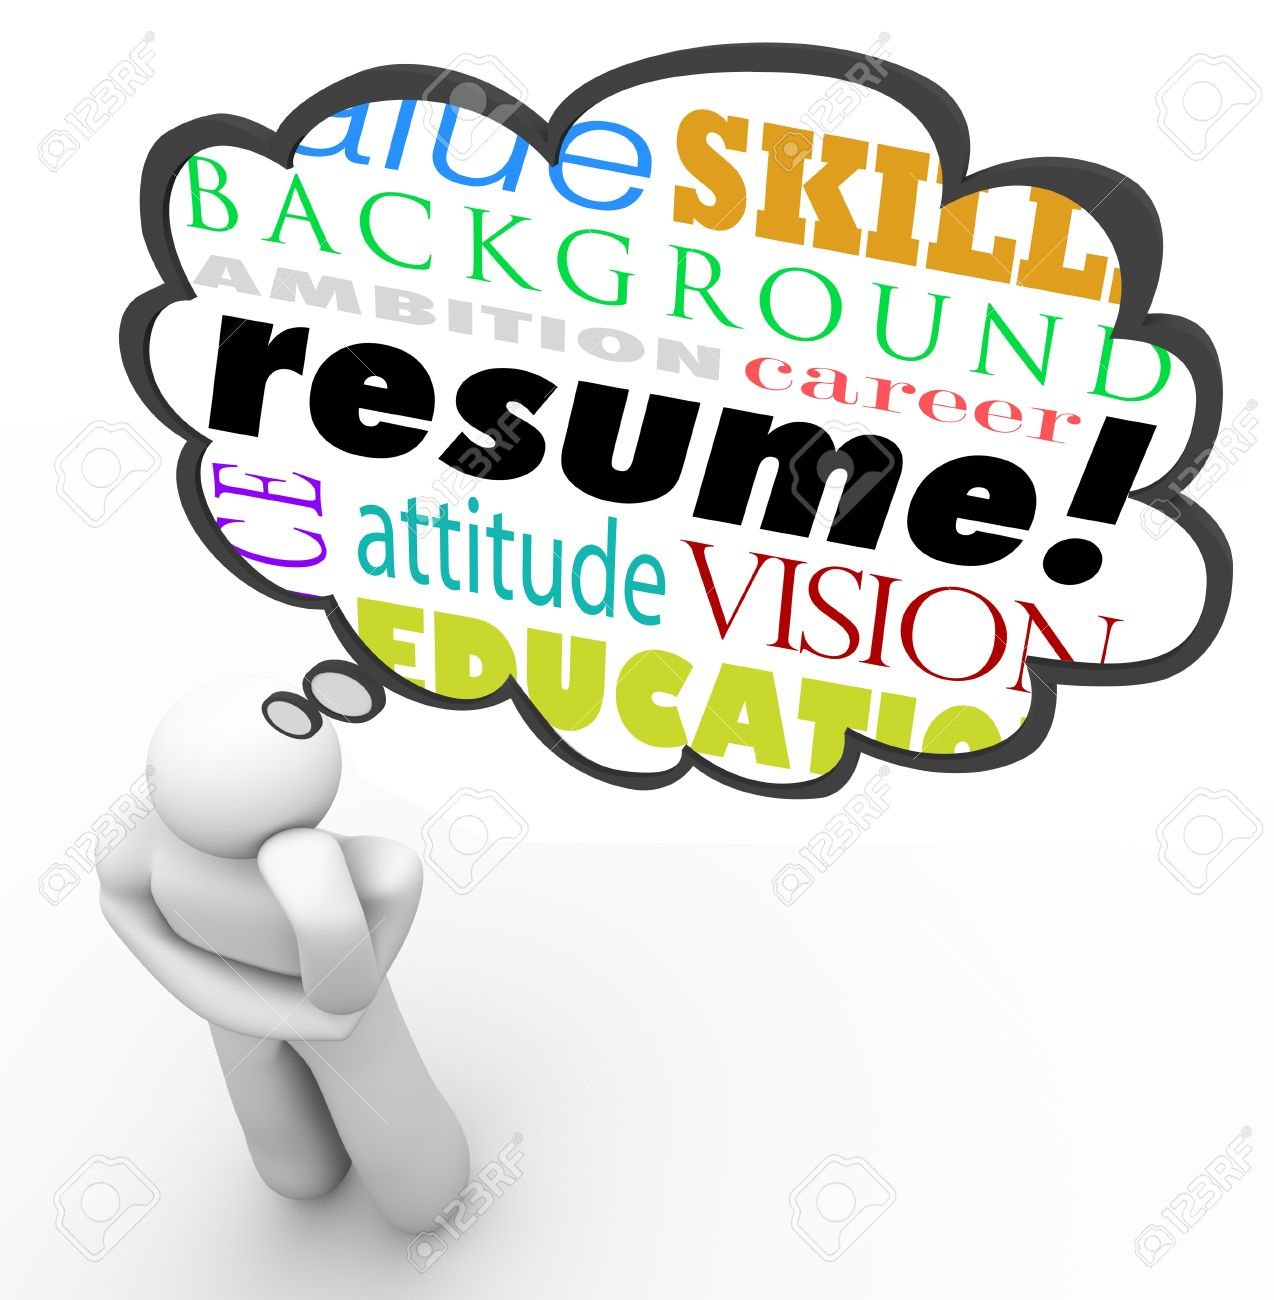 Resume Cloud Experience Resume a thought cloud above thinking person with words resume experience backgruond